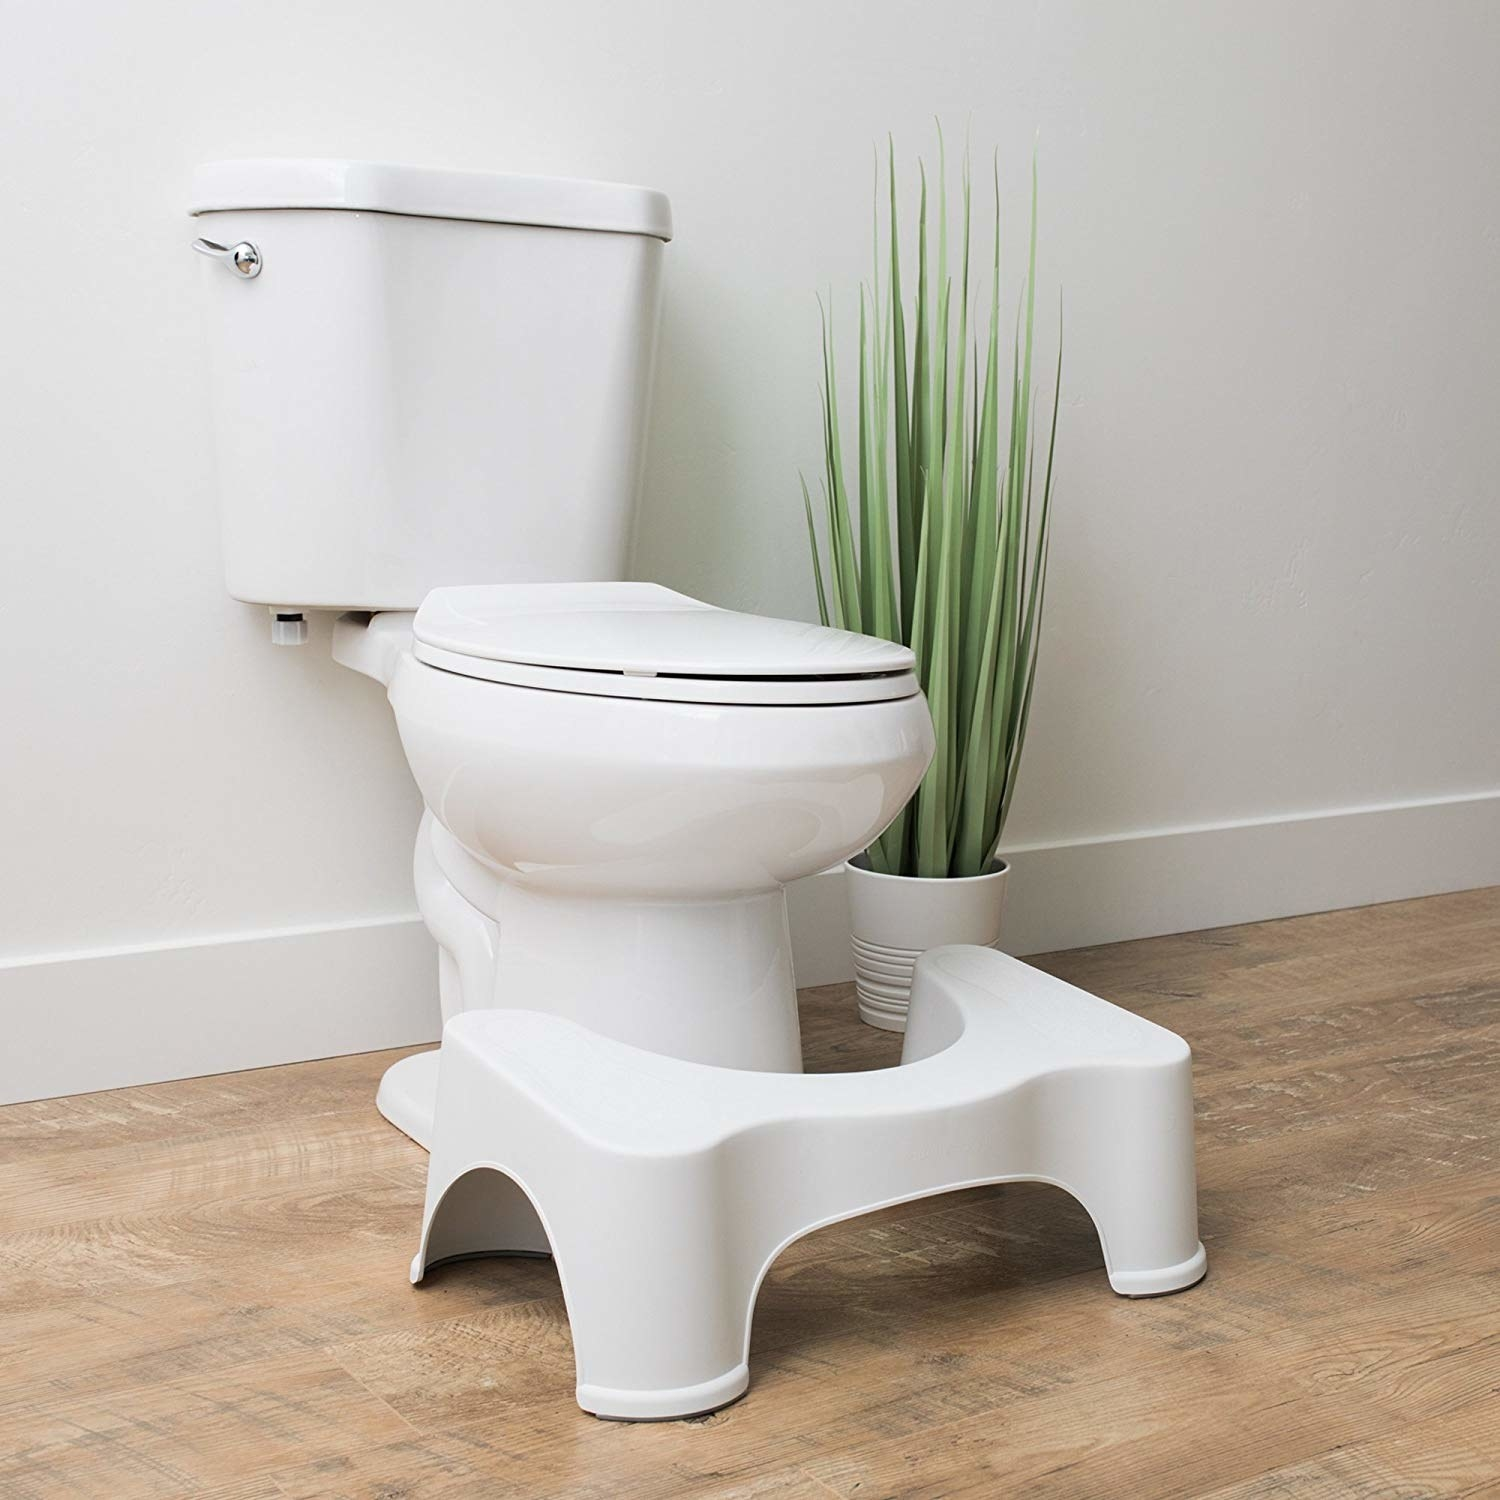 The squatty potty sitting in front of a toilet